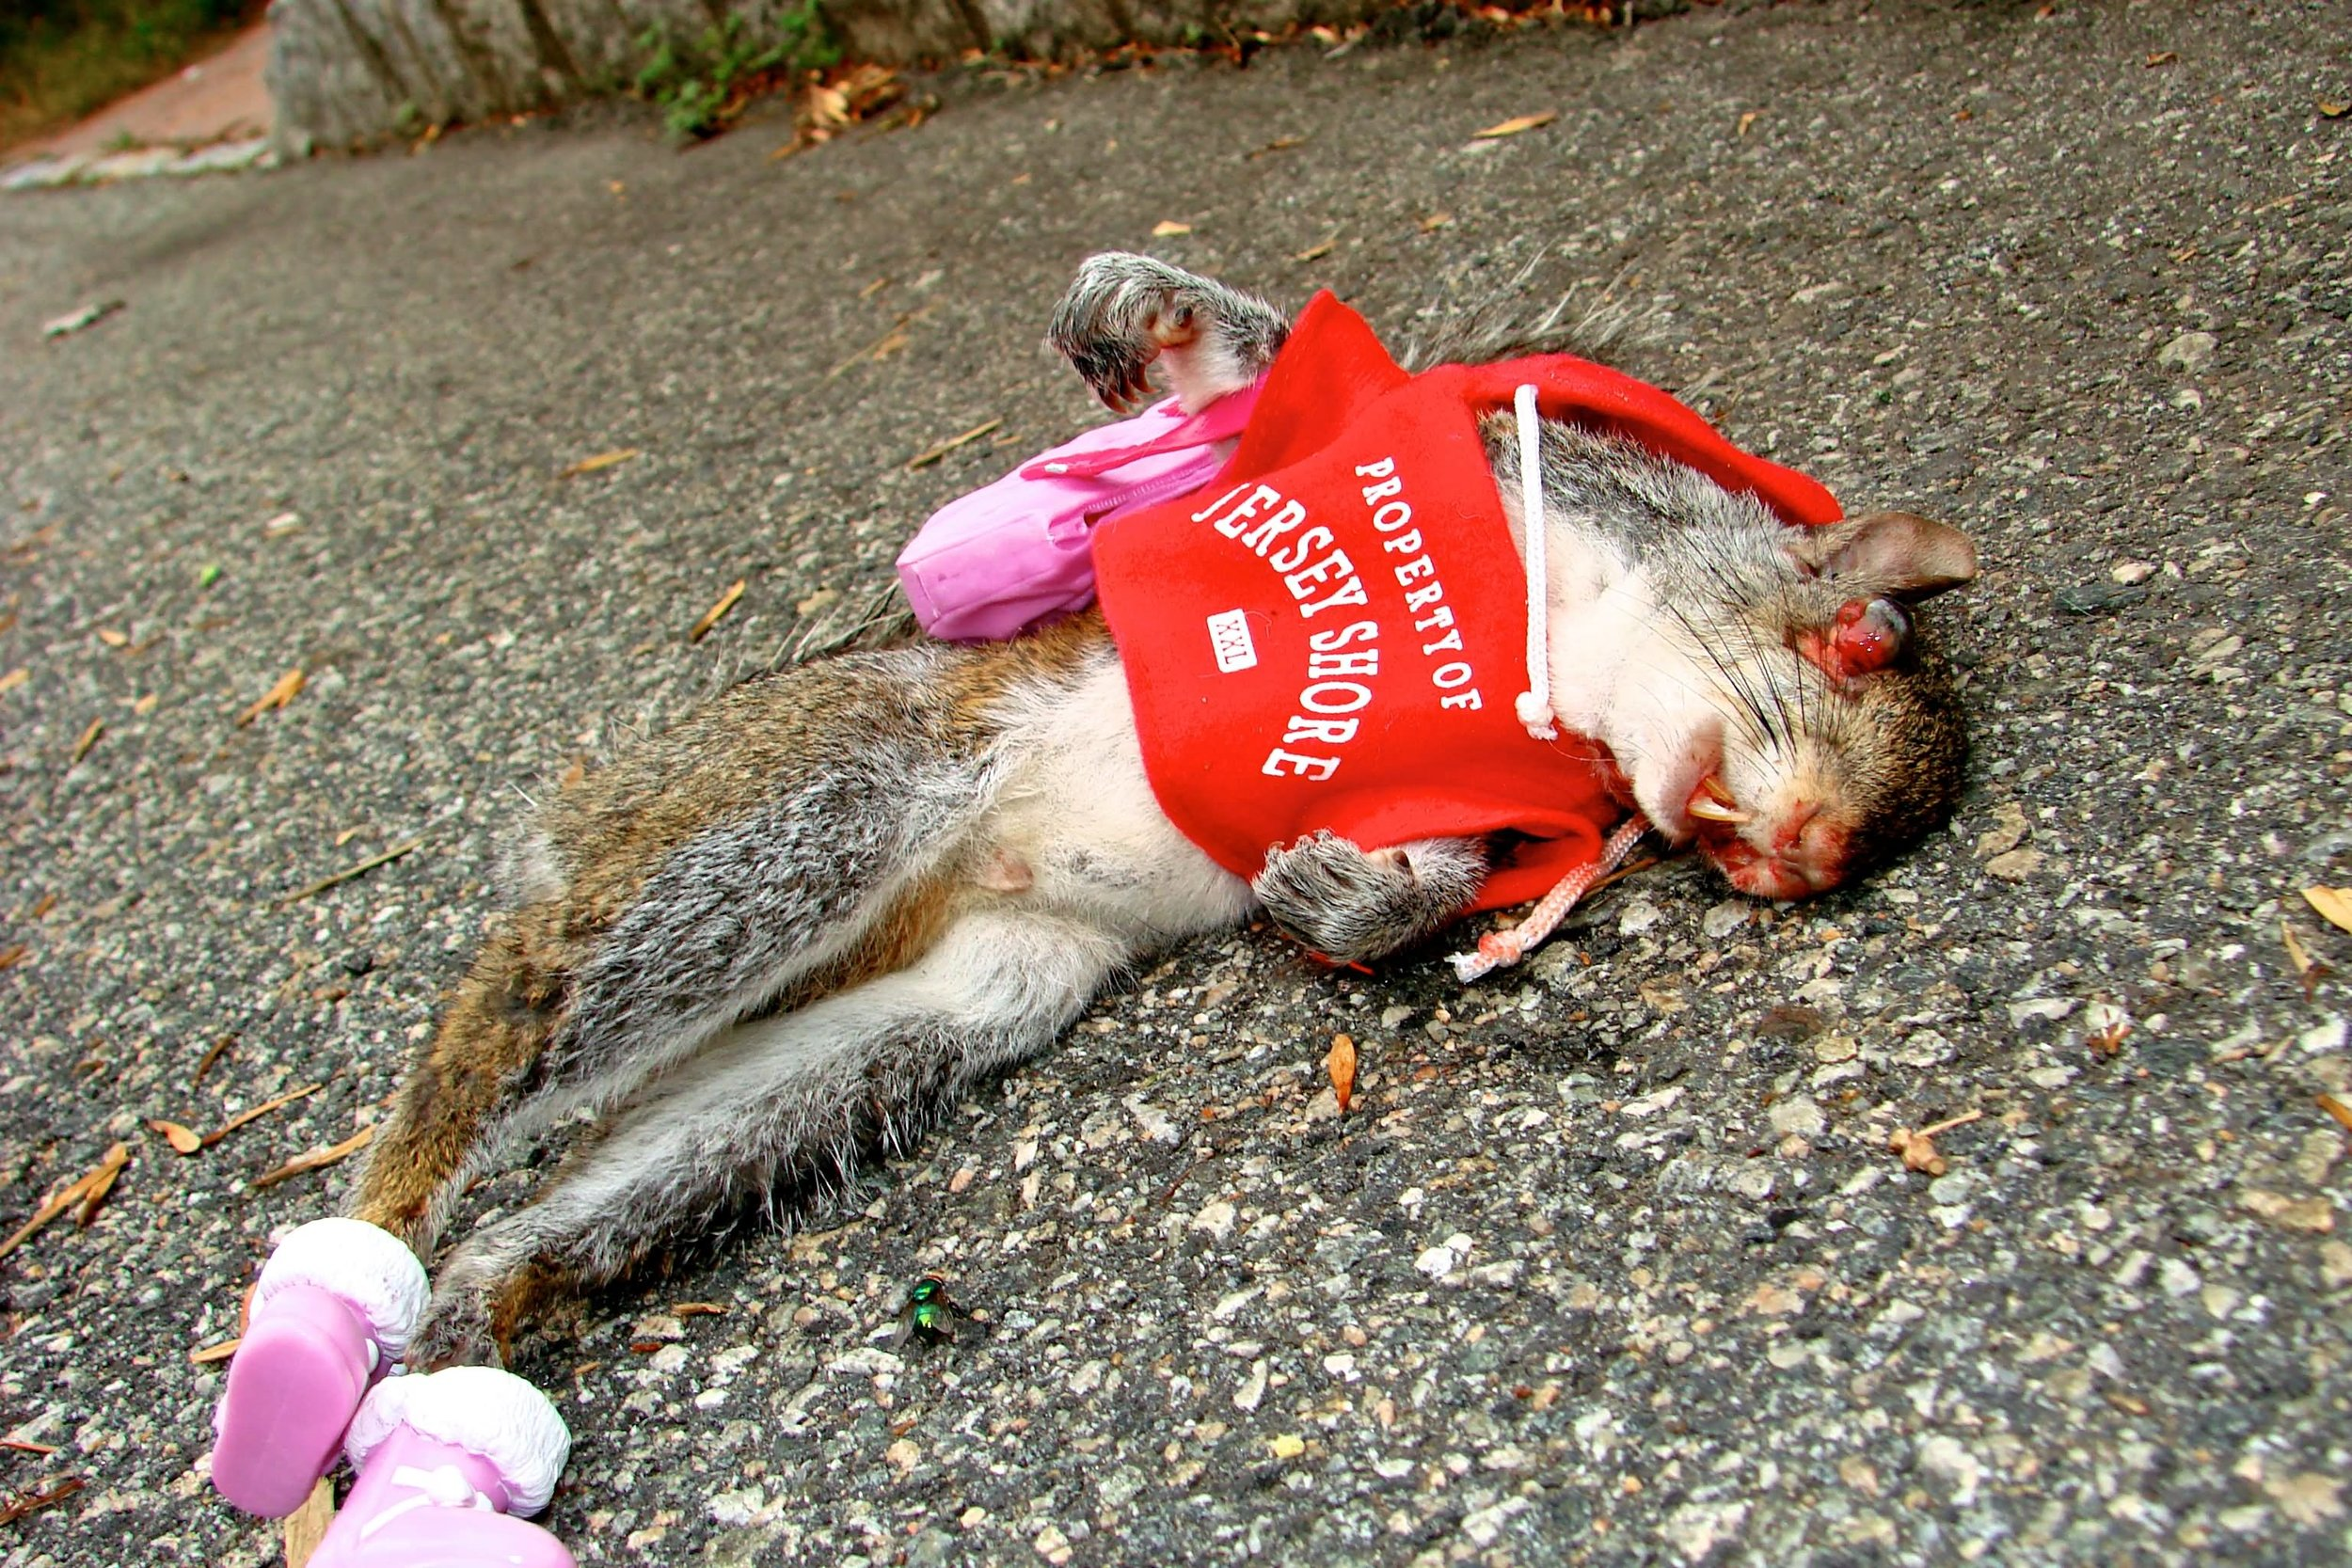 Funny-Squireel-Road-Kill-Image.jpg